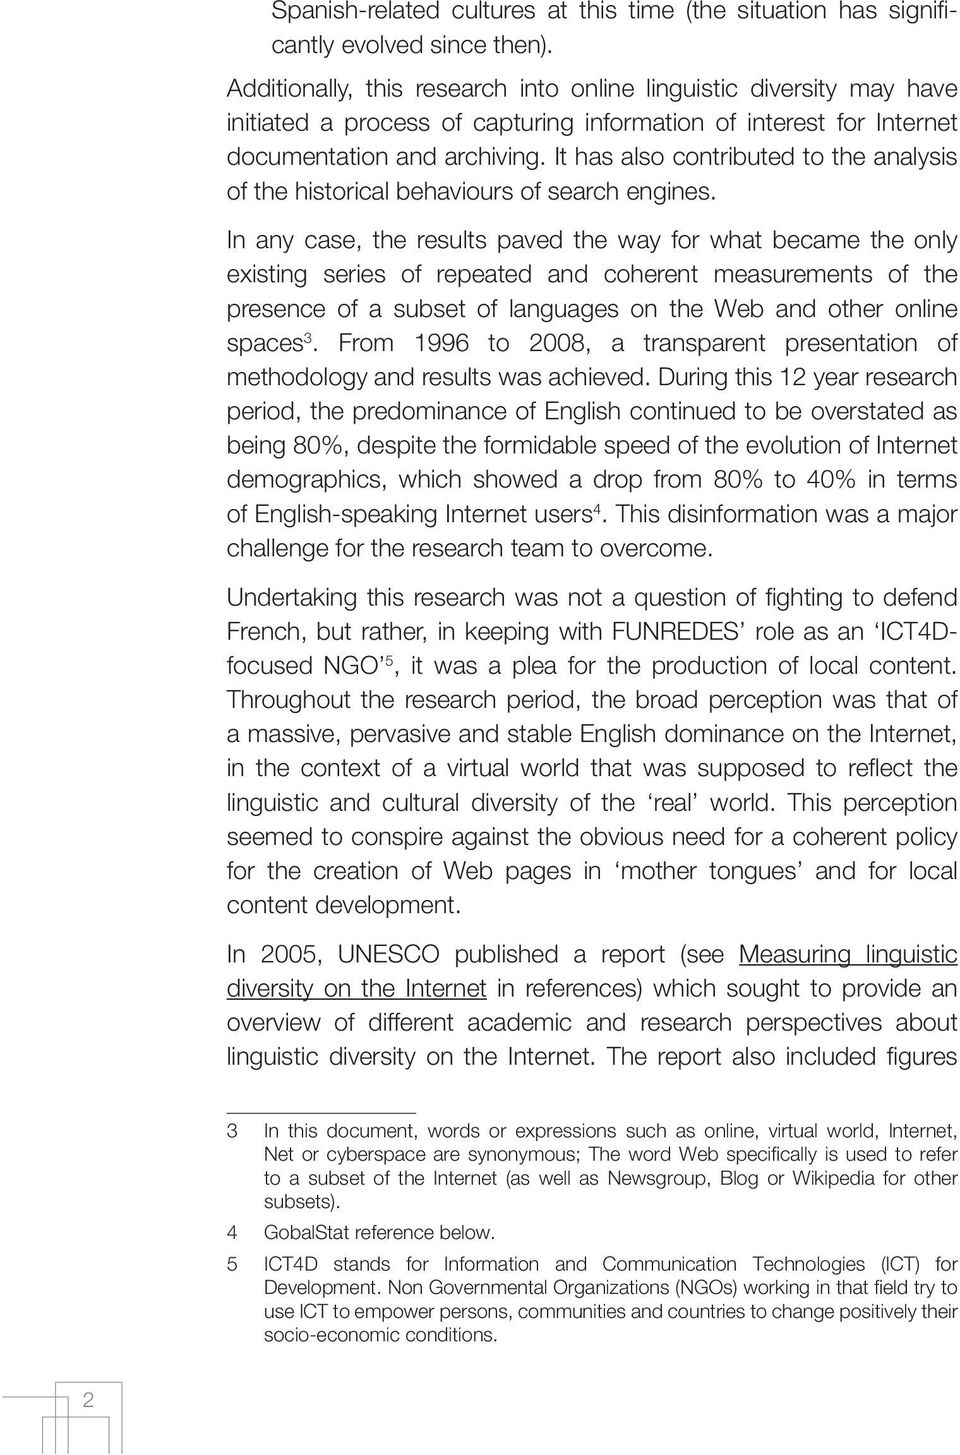 It has also contributed to the analysis of the historical behaviours of search engines.